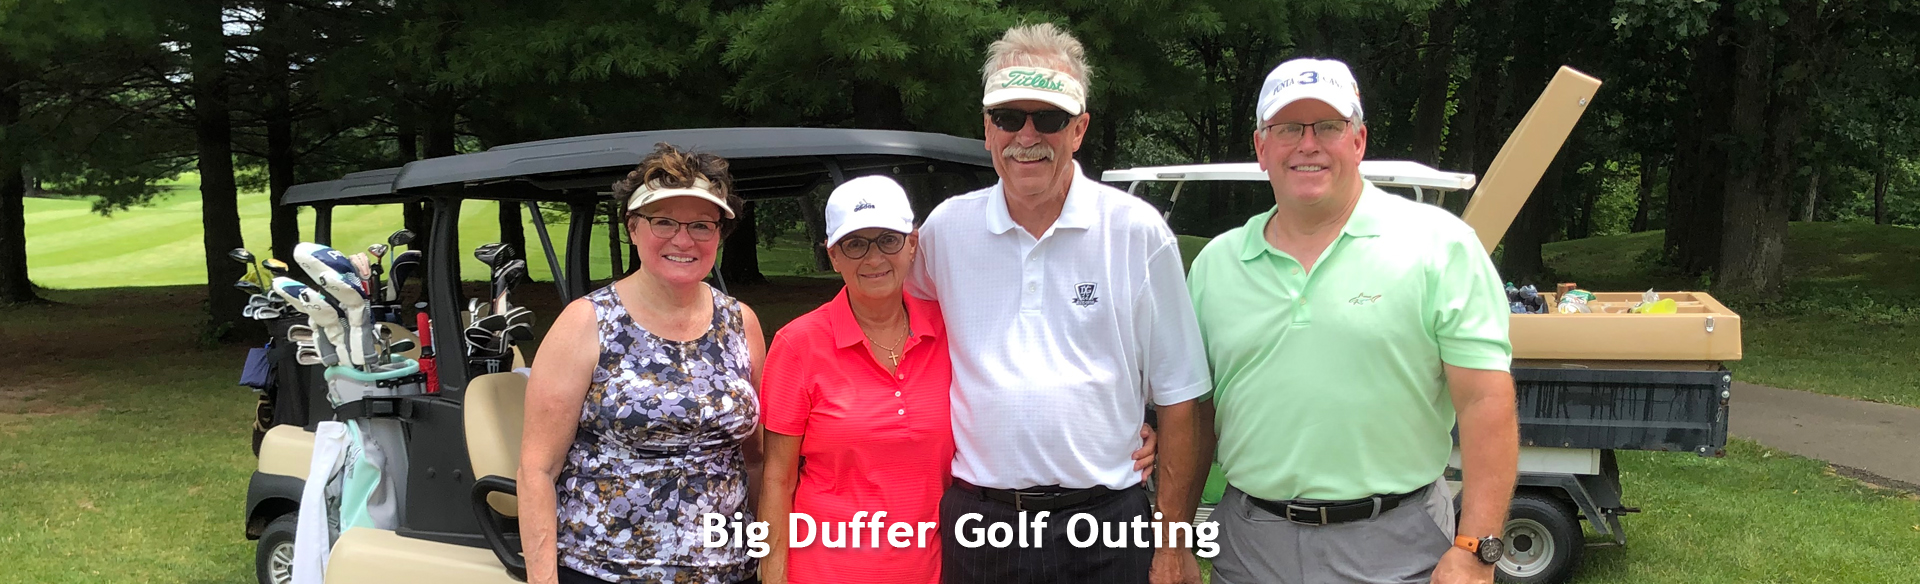 Big Duffer Hospice Golf Outing